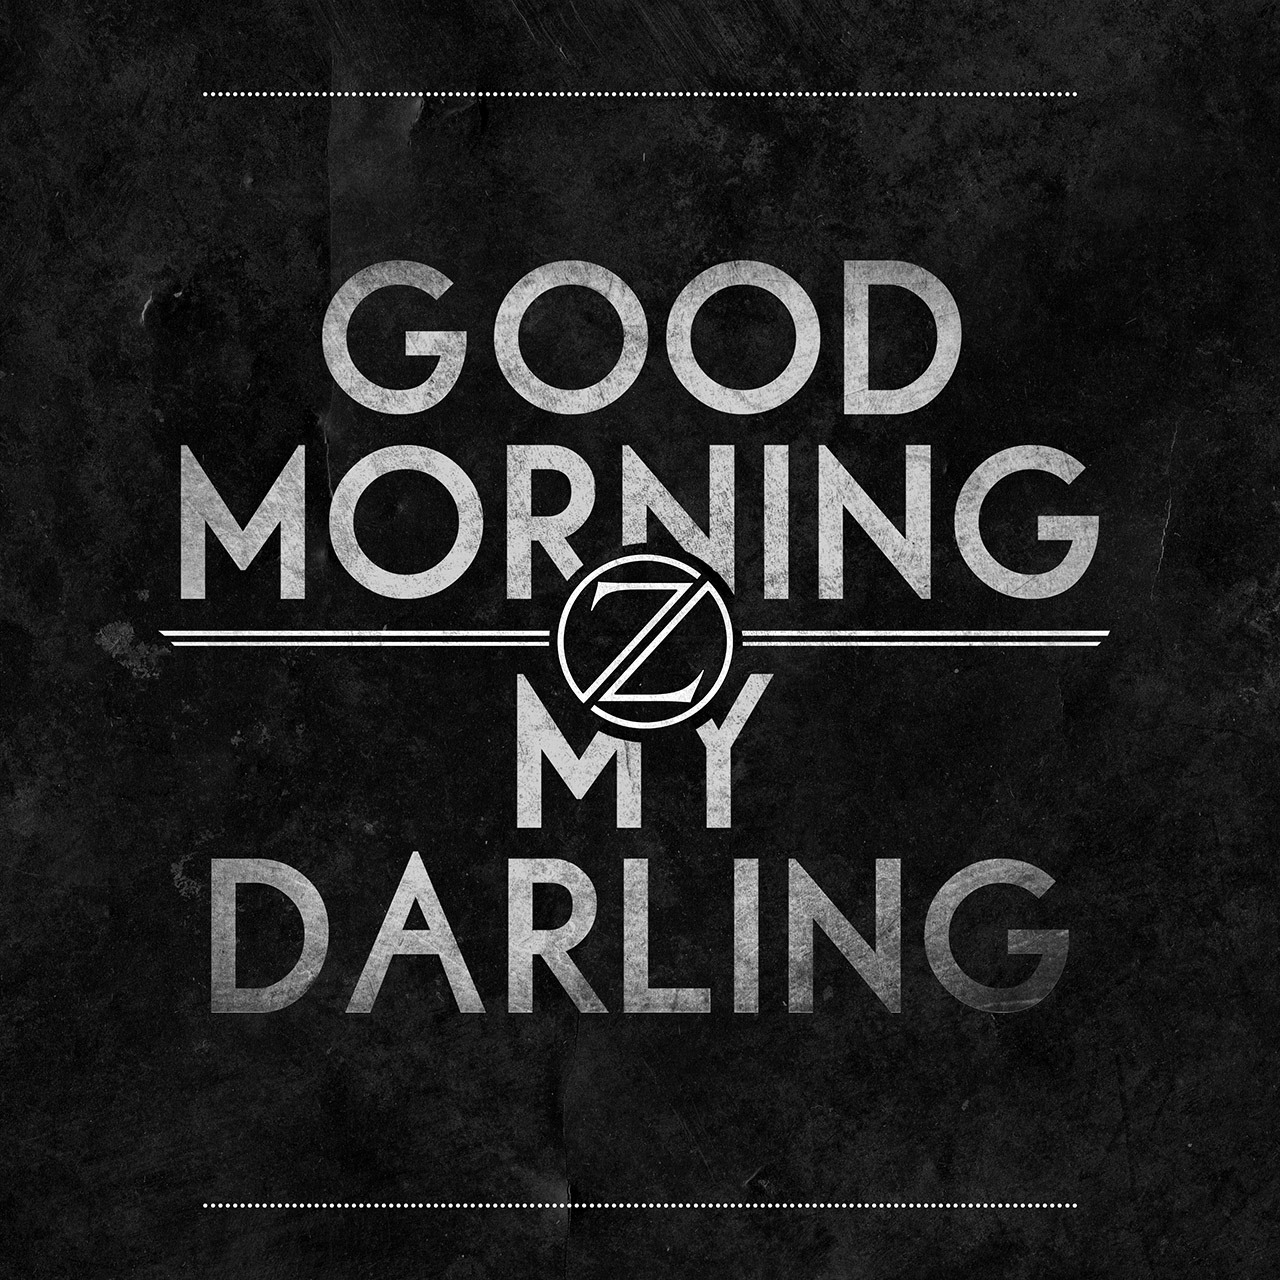 Zelimir - GMMD Wallpaper (Good Morning My Darling) (Good Morning My Darling)